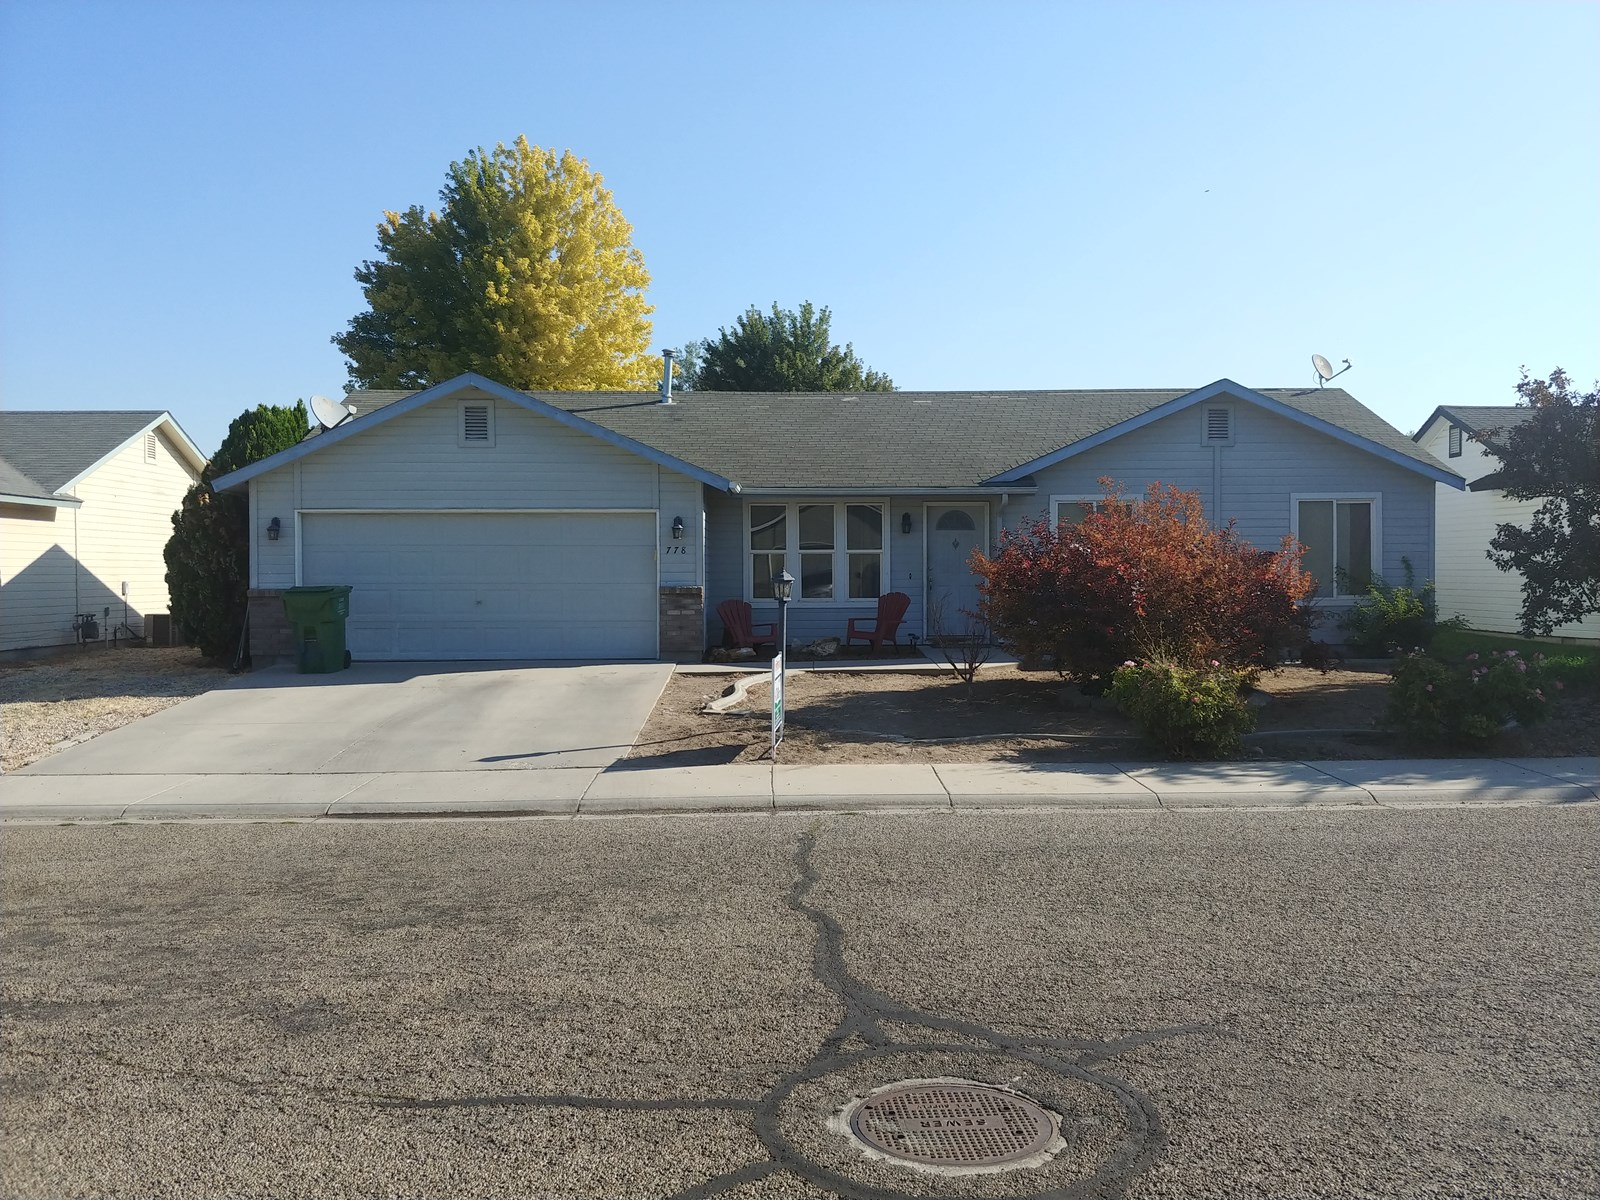 Home for sale in Meridian, Ada County, Idaho